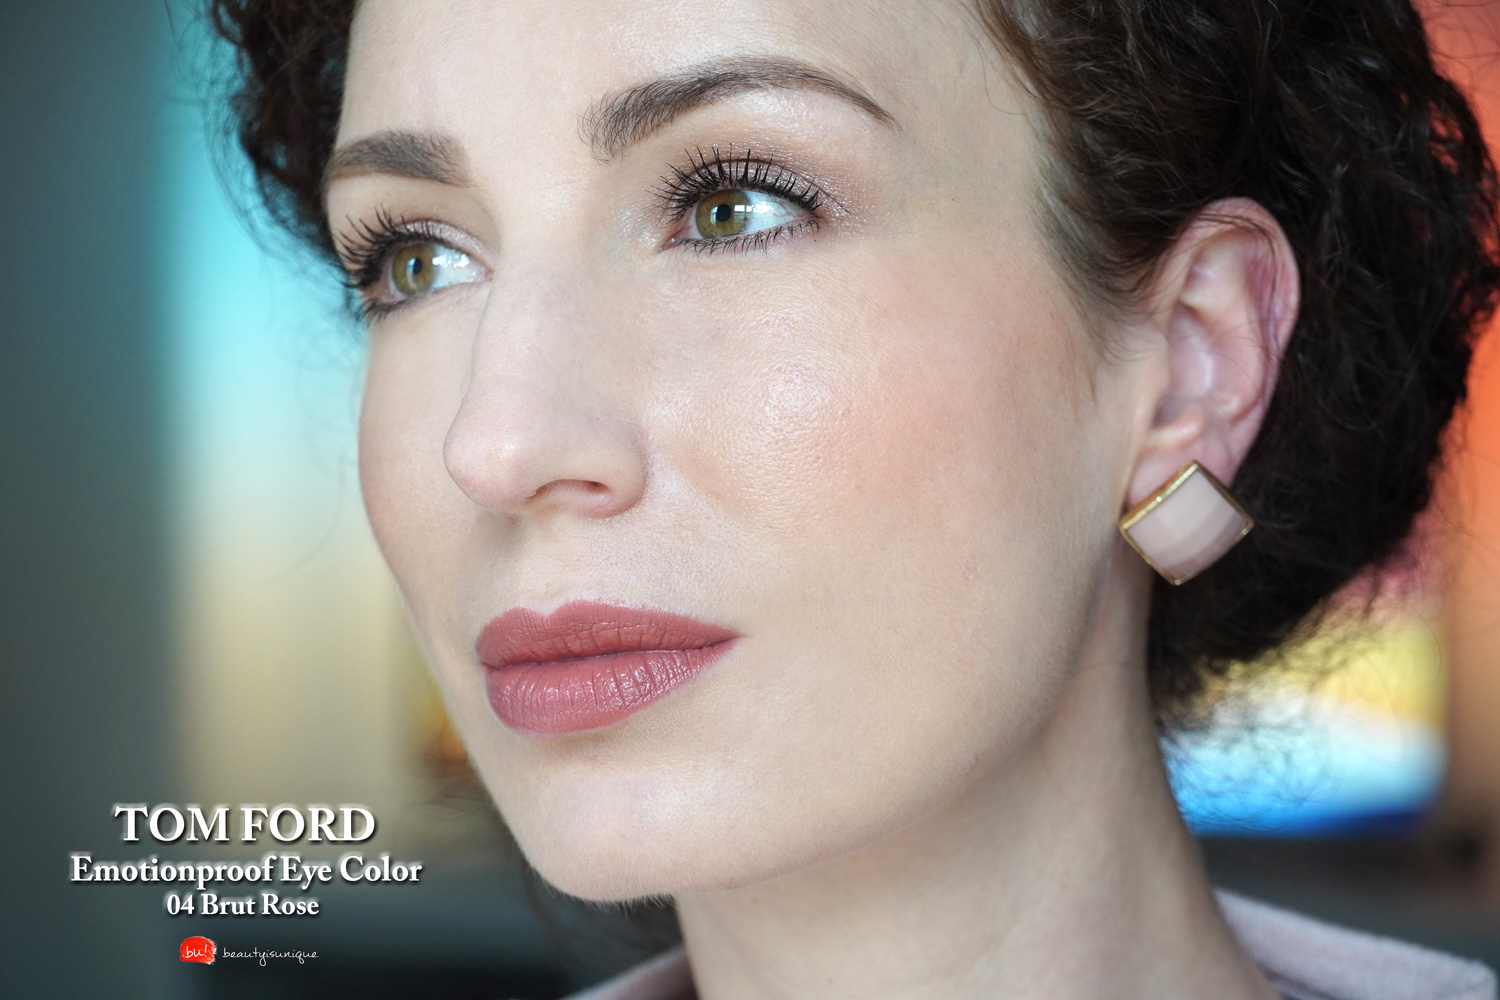 Tom-ford-emotionproof-eye-color-brut-rose-swatches